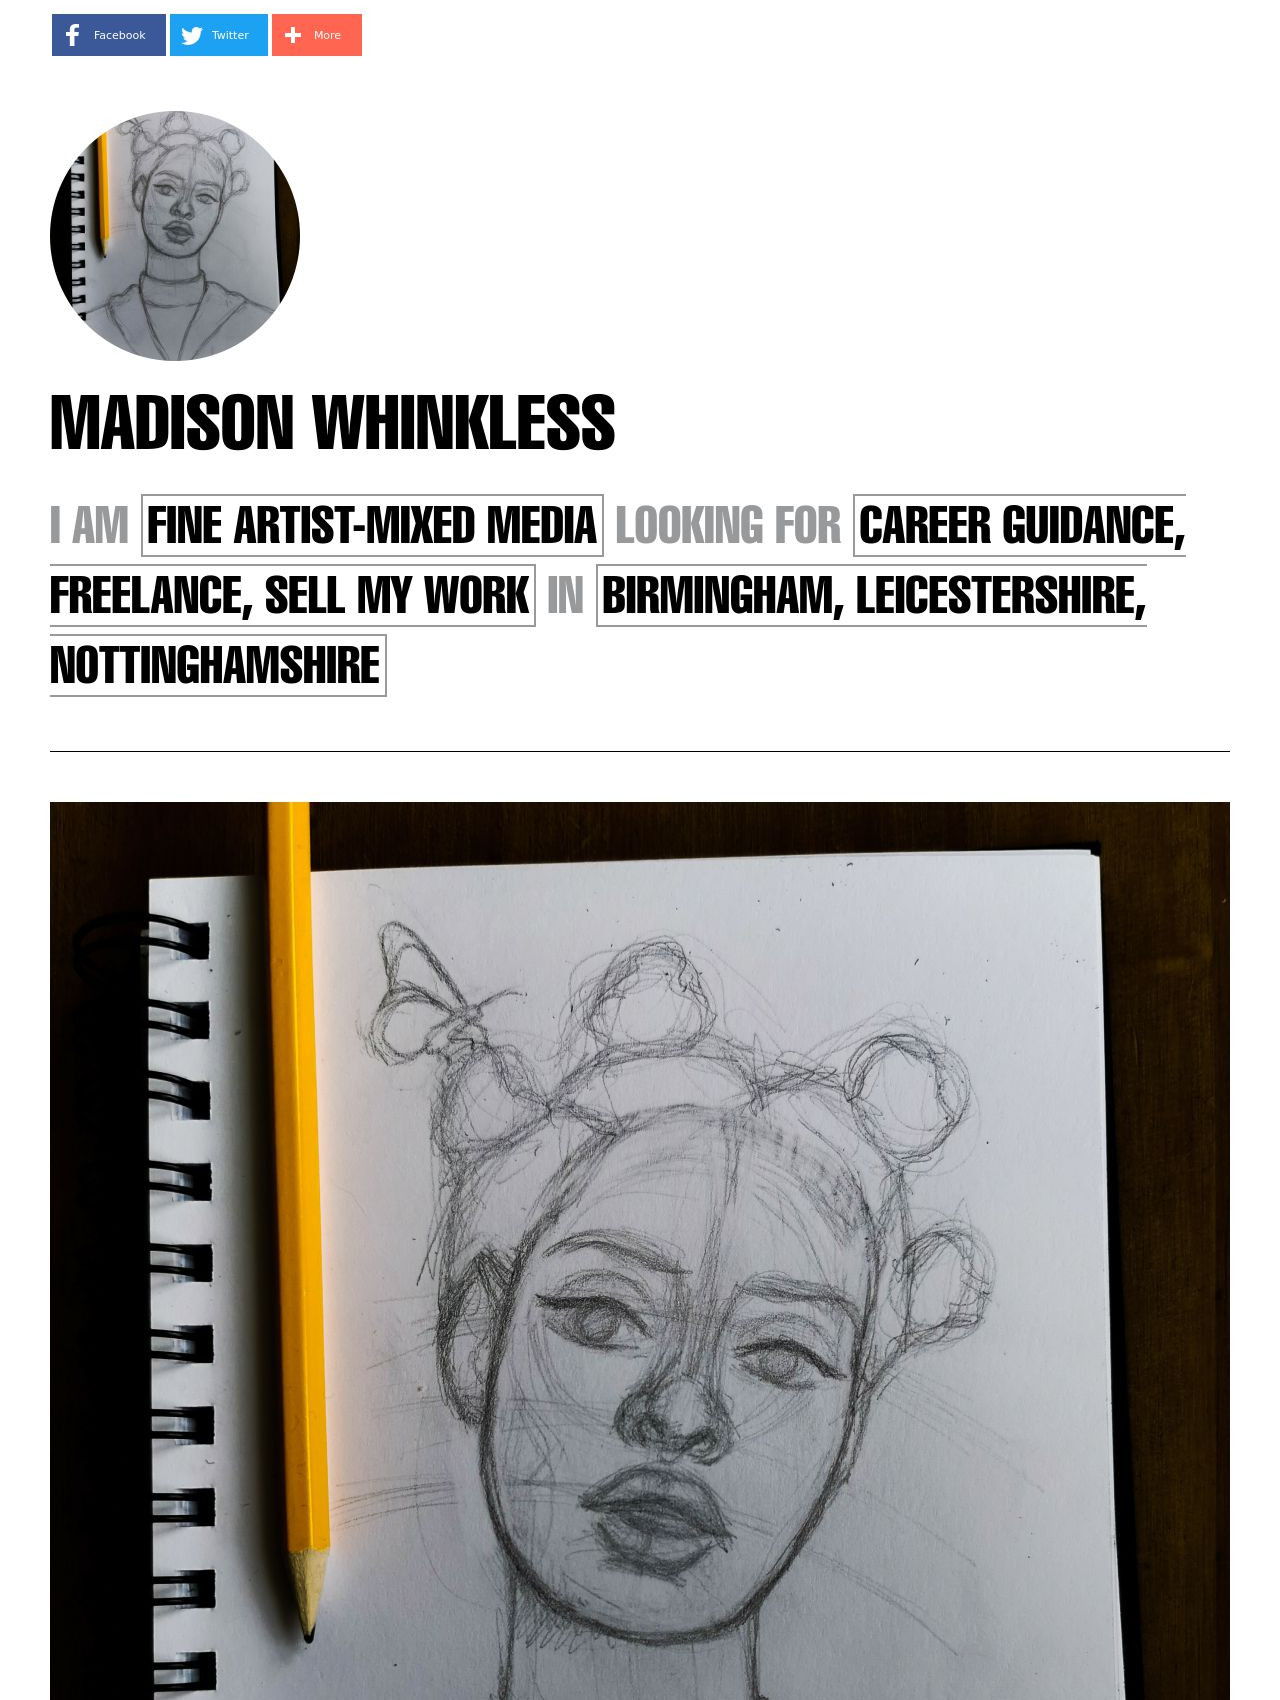 Madison Whinkless